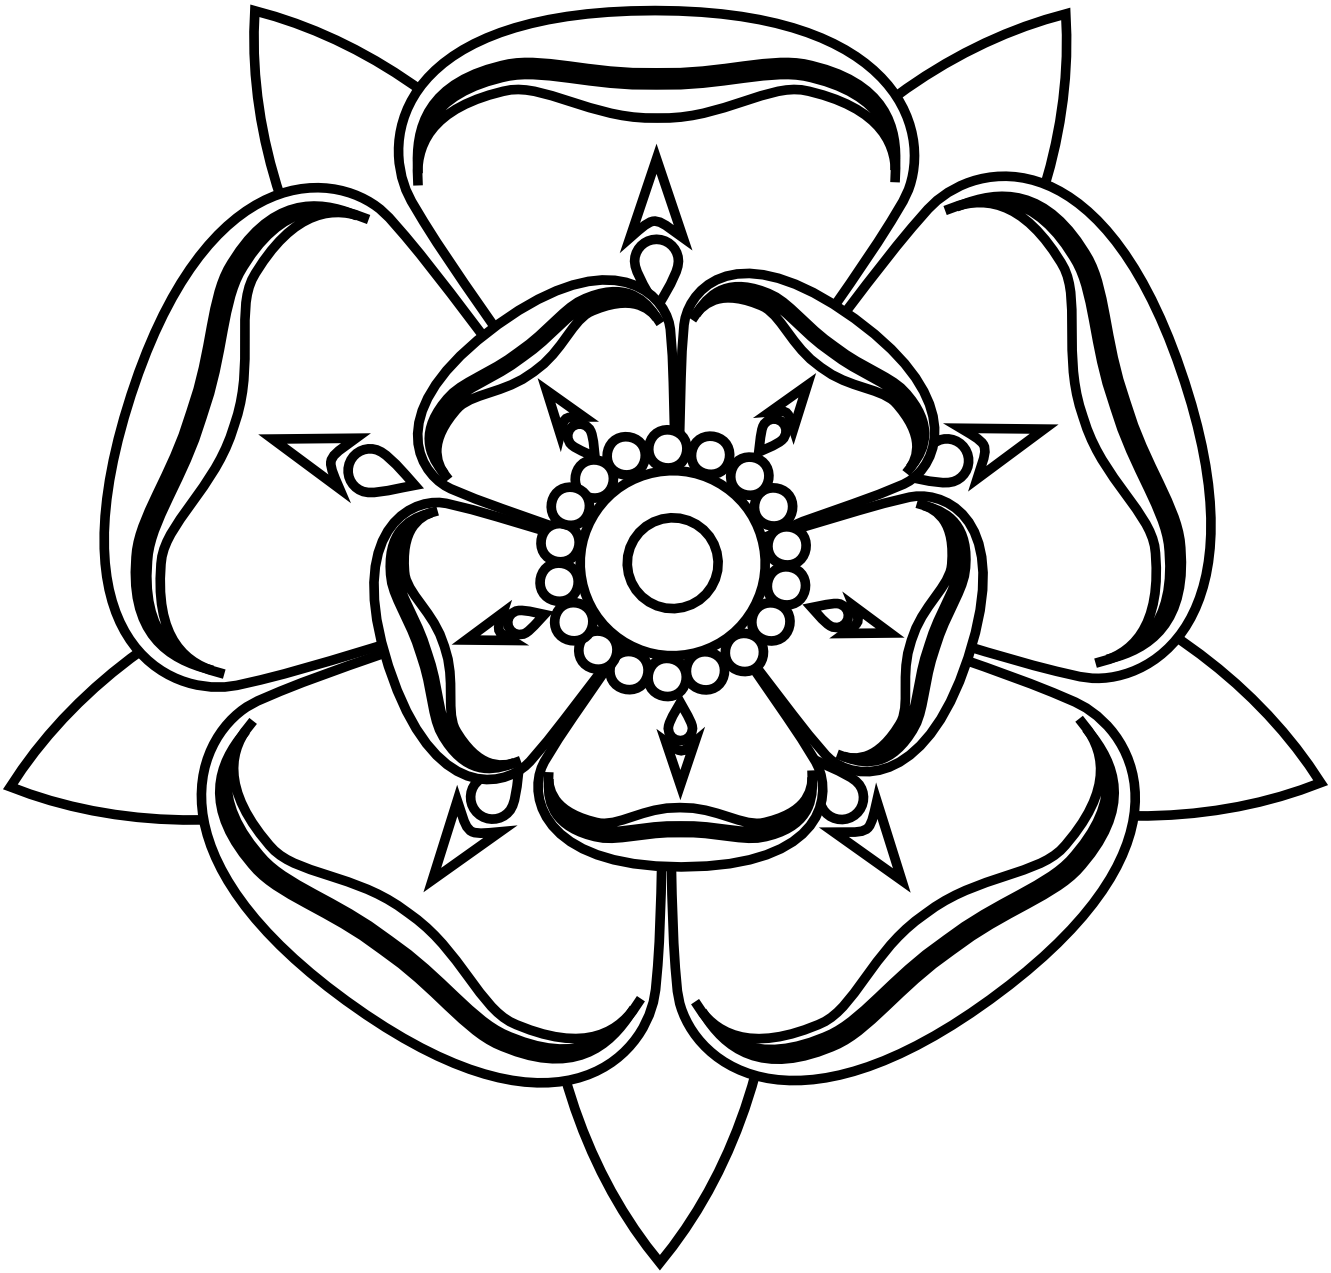 coloring flower png cute spring flower coloring page 3 free clip art flower png coloring